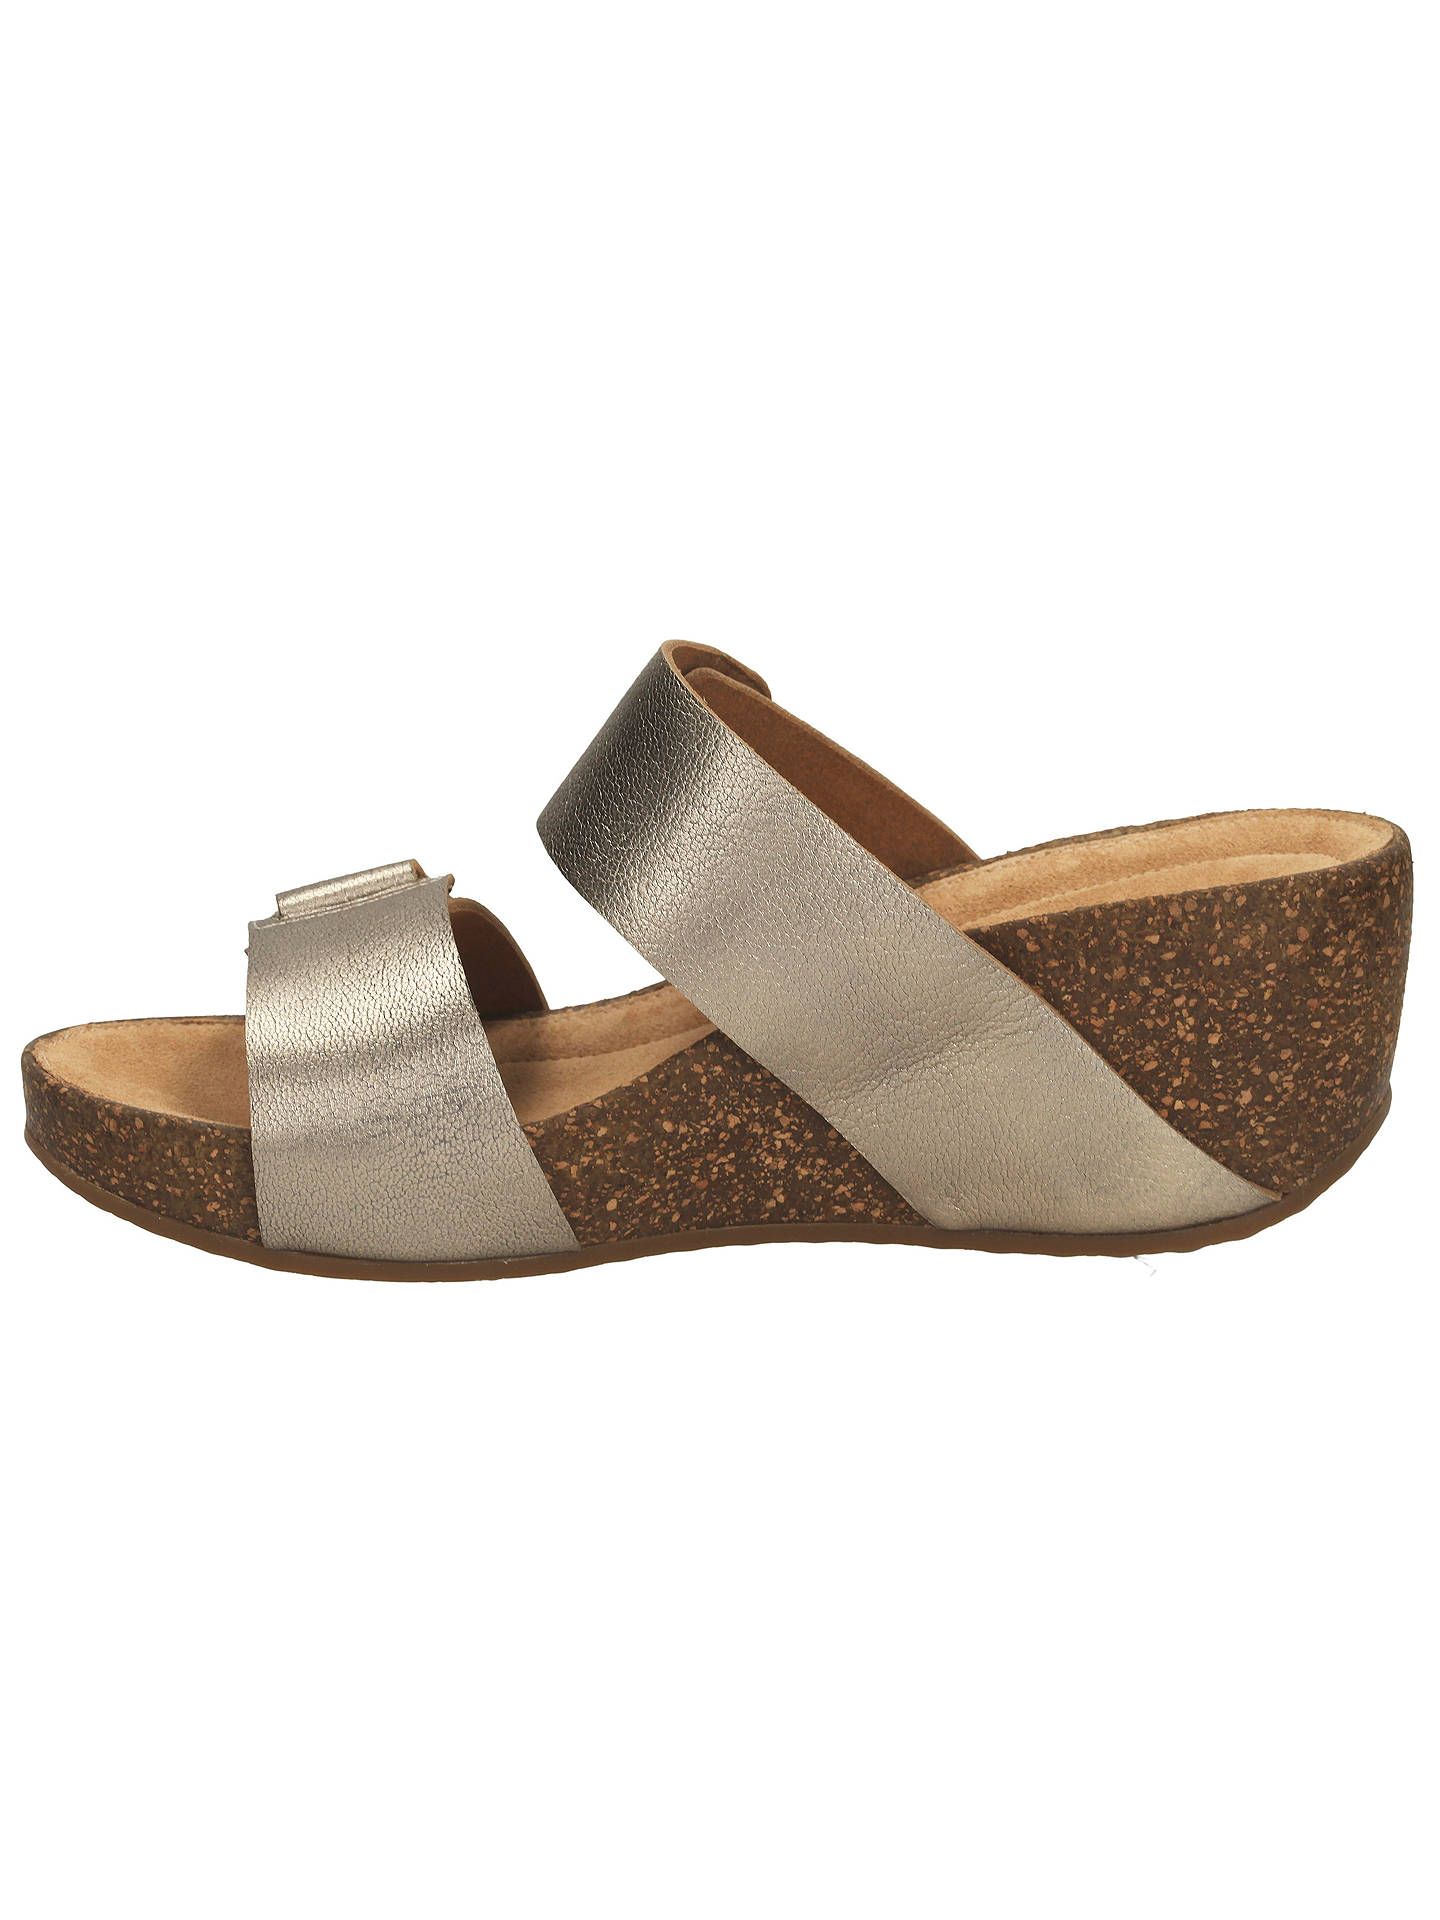 2c9a65c6ba17e ... Buy Clarks Temira East Leather Wedges